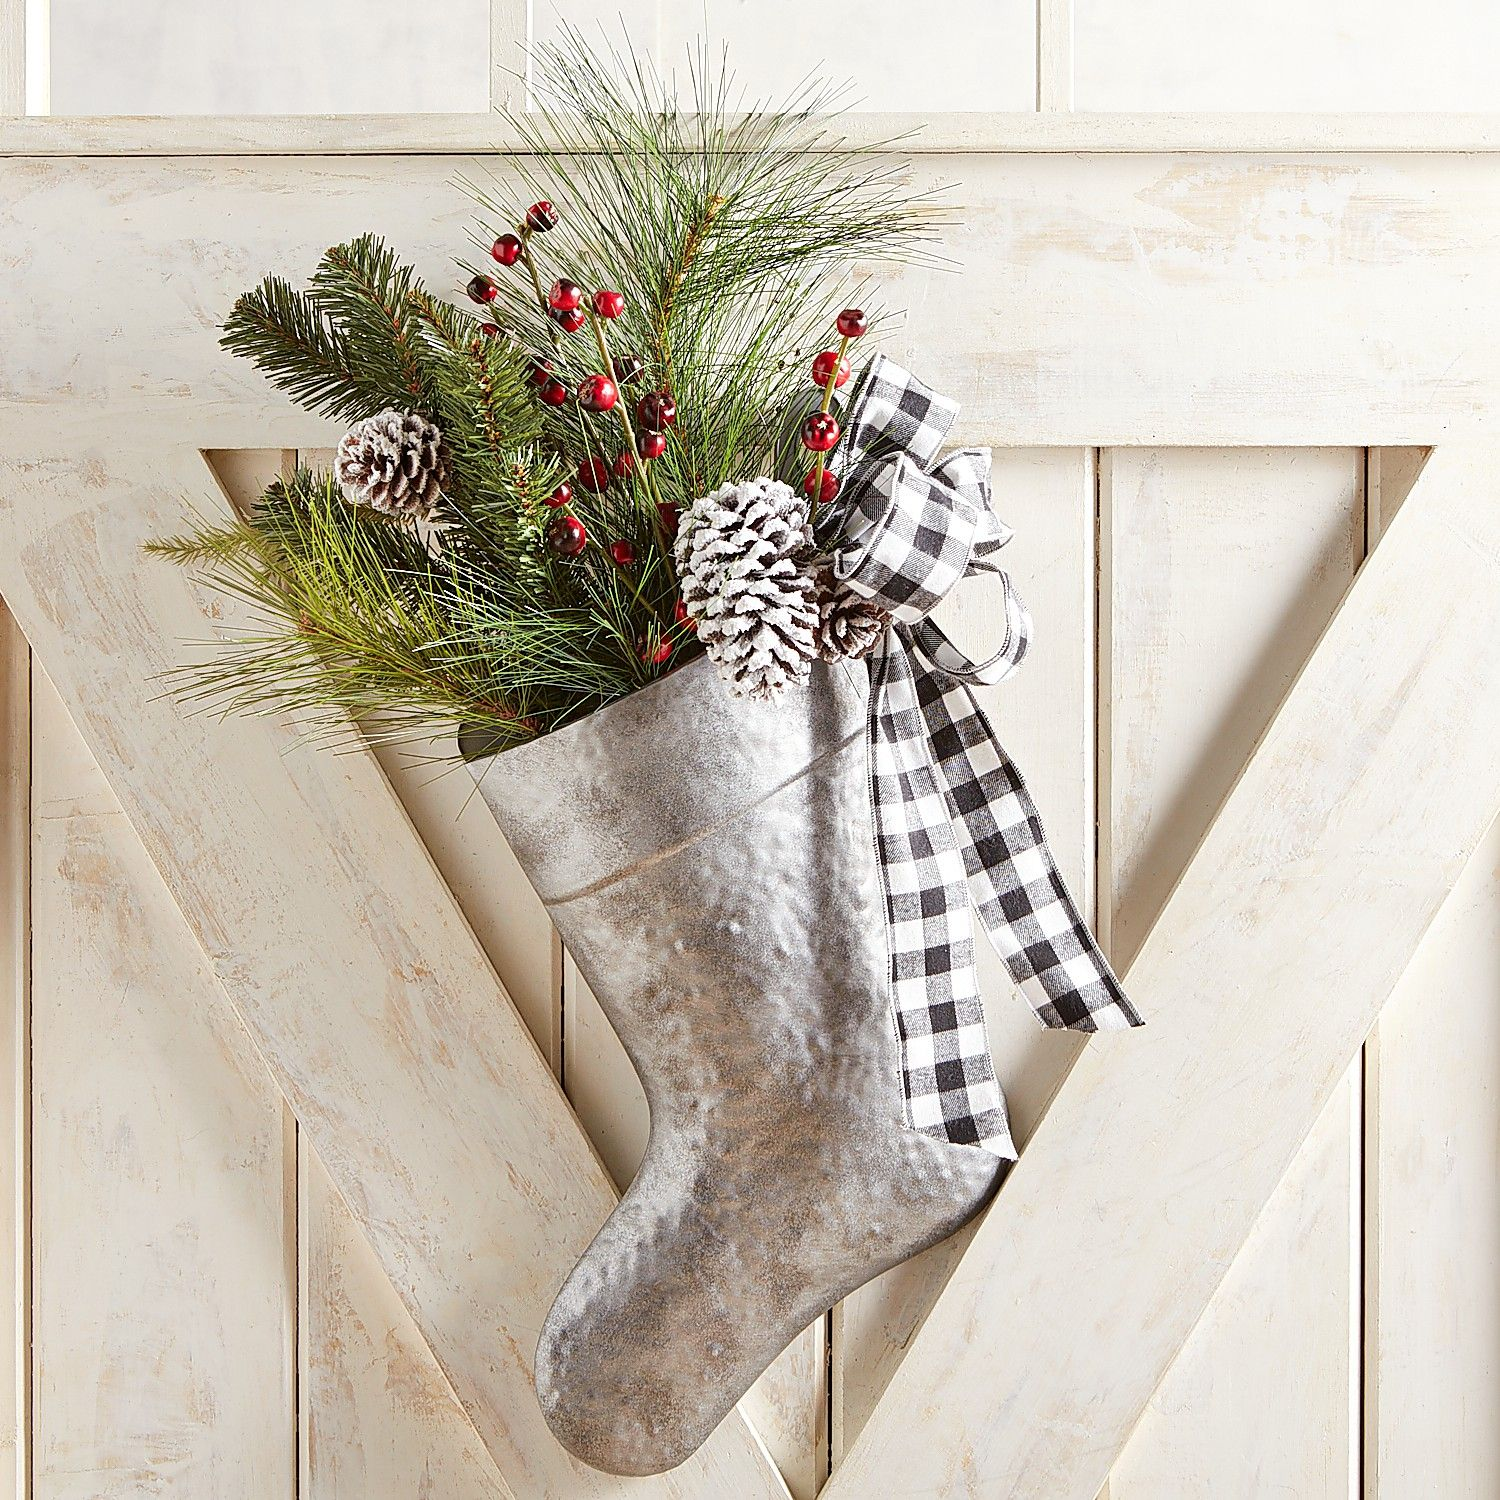 9 Christmas Front Door Decorations to Greet Your Holiday Guests Galvanized Stocking With Faux Greenery #Christmas #ChristmasDecor #ChristmasStocking #ChristmasGatherings #FamilyGatherings #FrontDoorDecor #PorchDecor